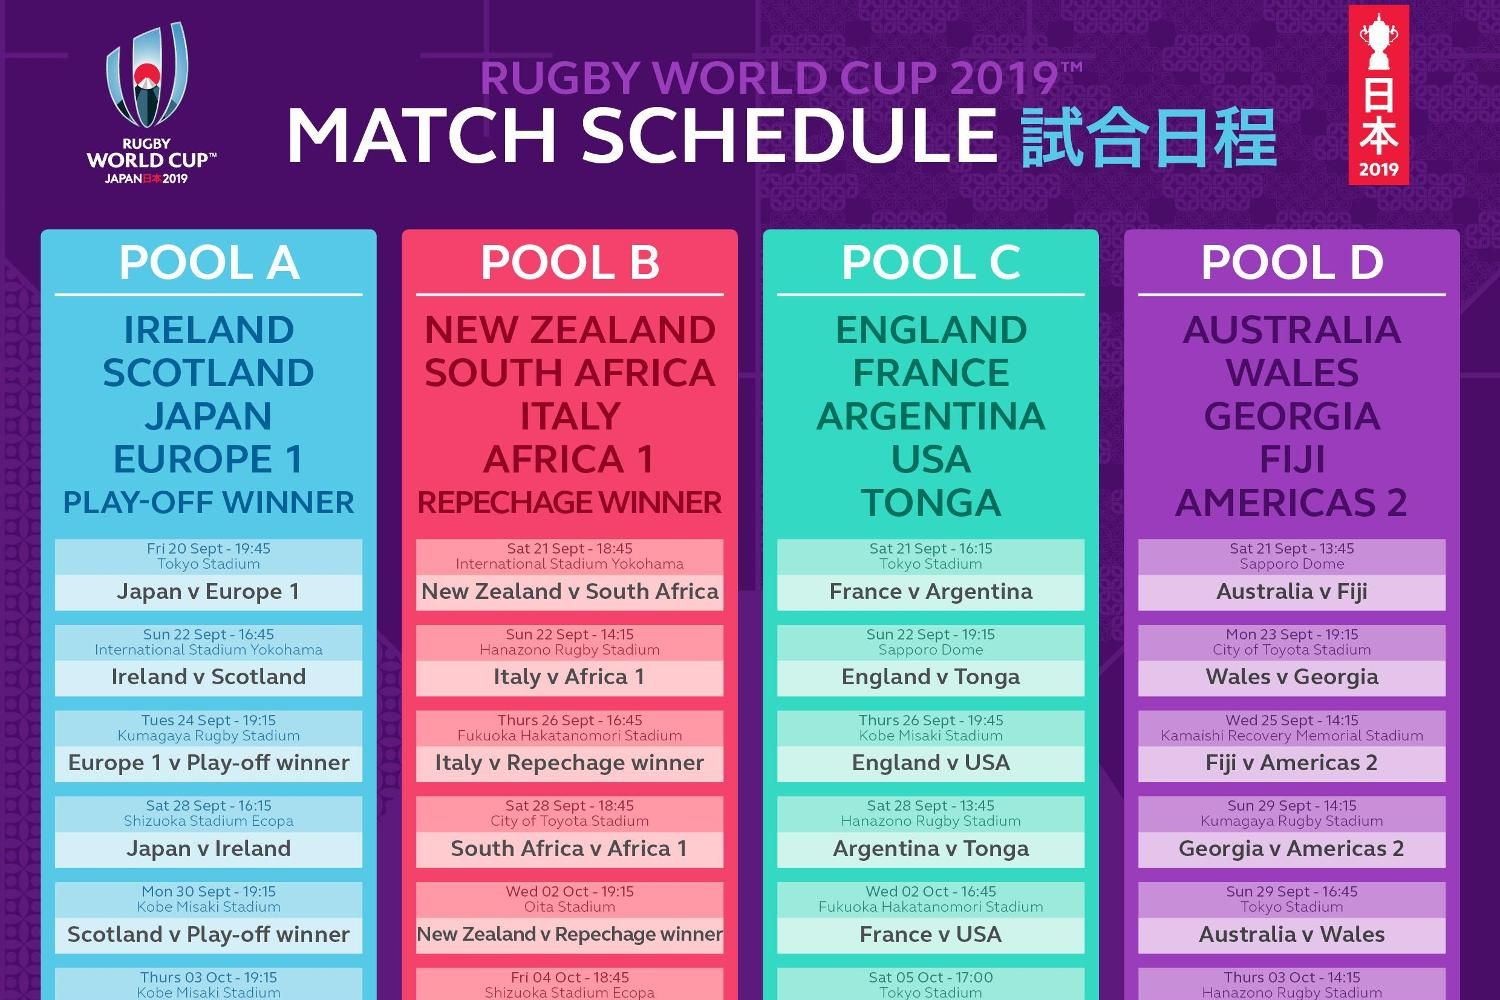 Rugby World Cup 2019 Live Stream Rugby world cup, Rugby